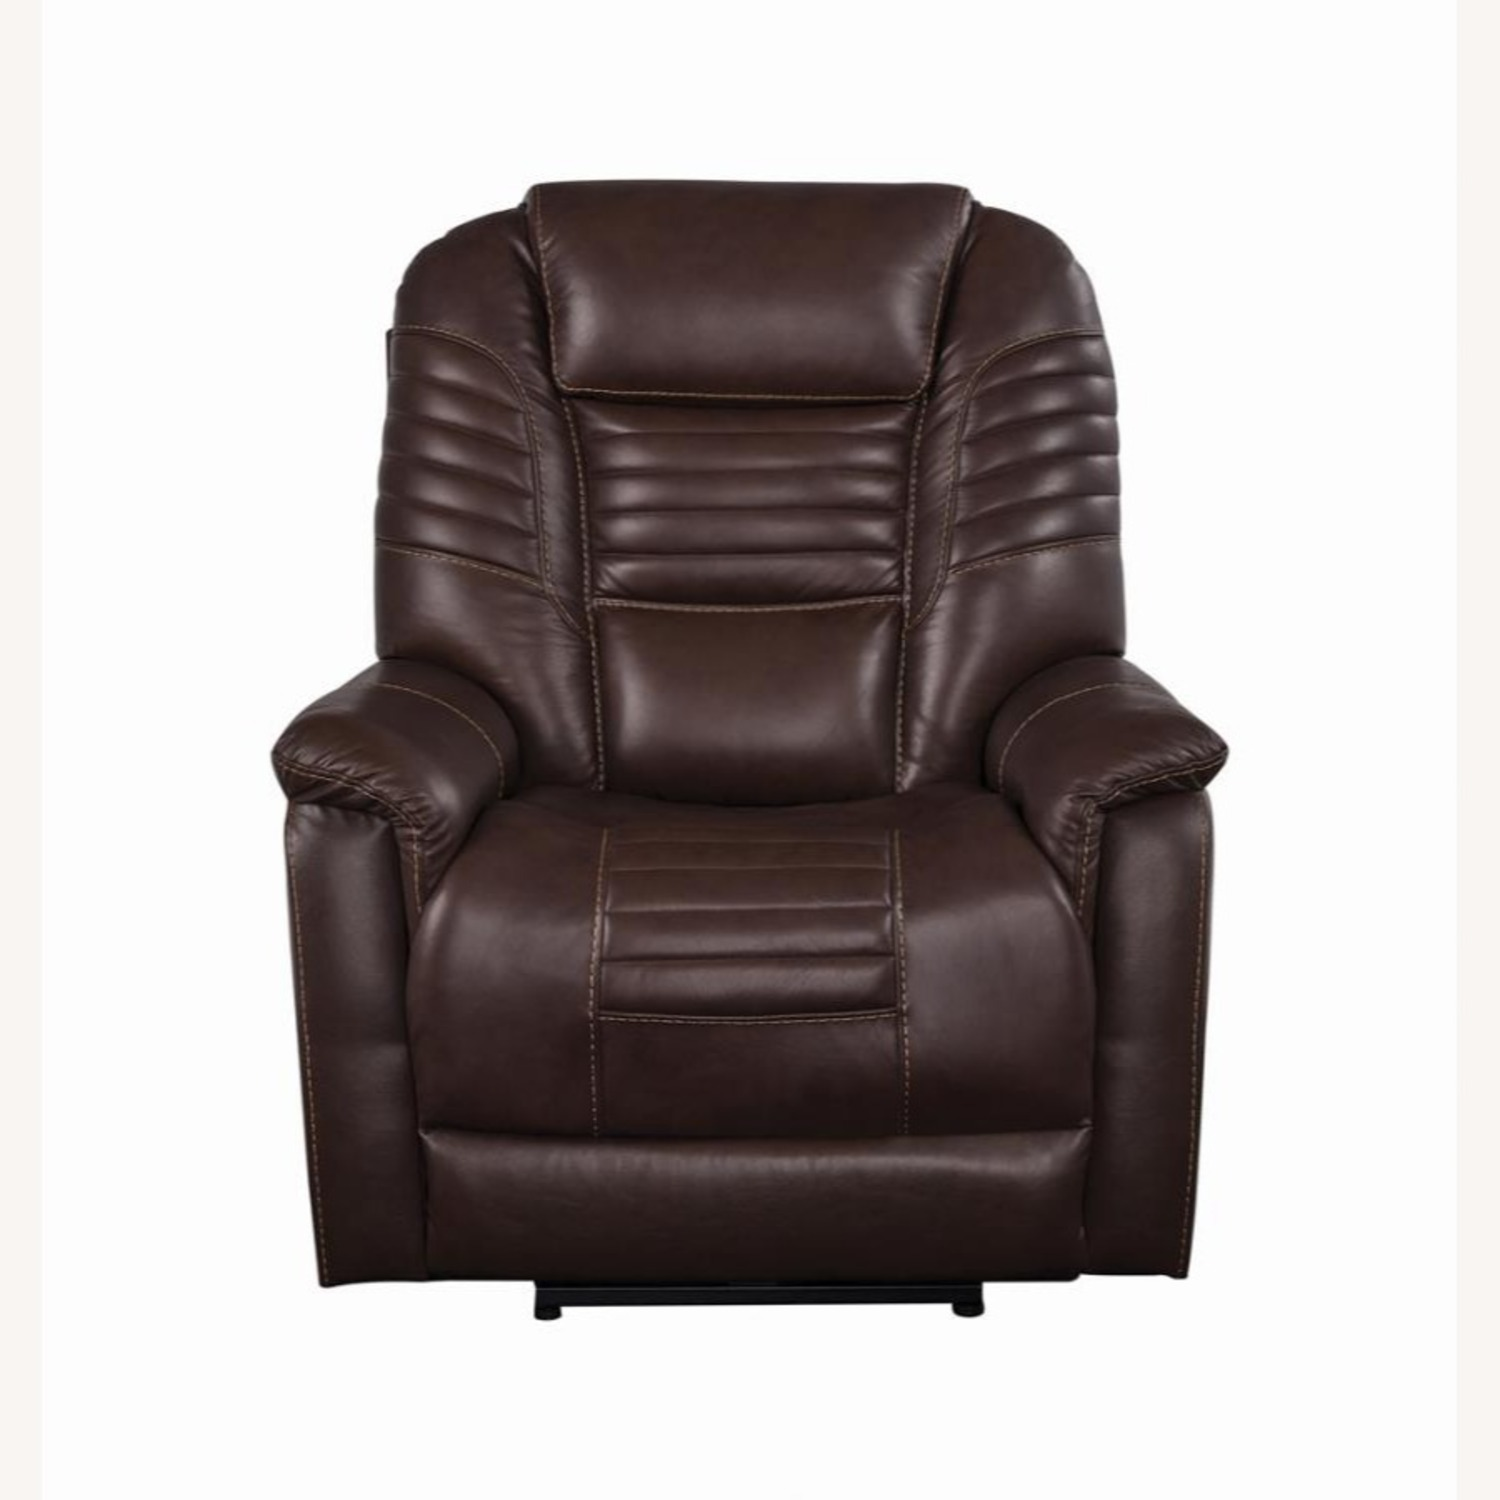 Power Recliner In Cozy Brown Leather Upholstery - image-2